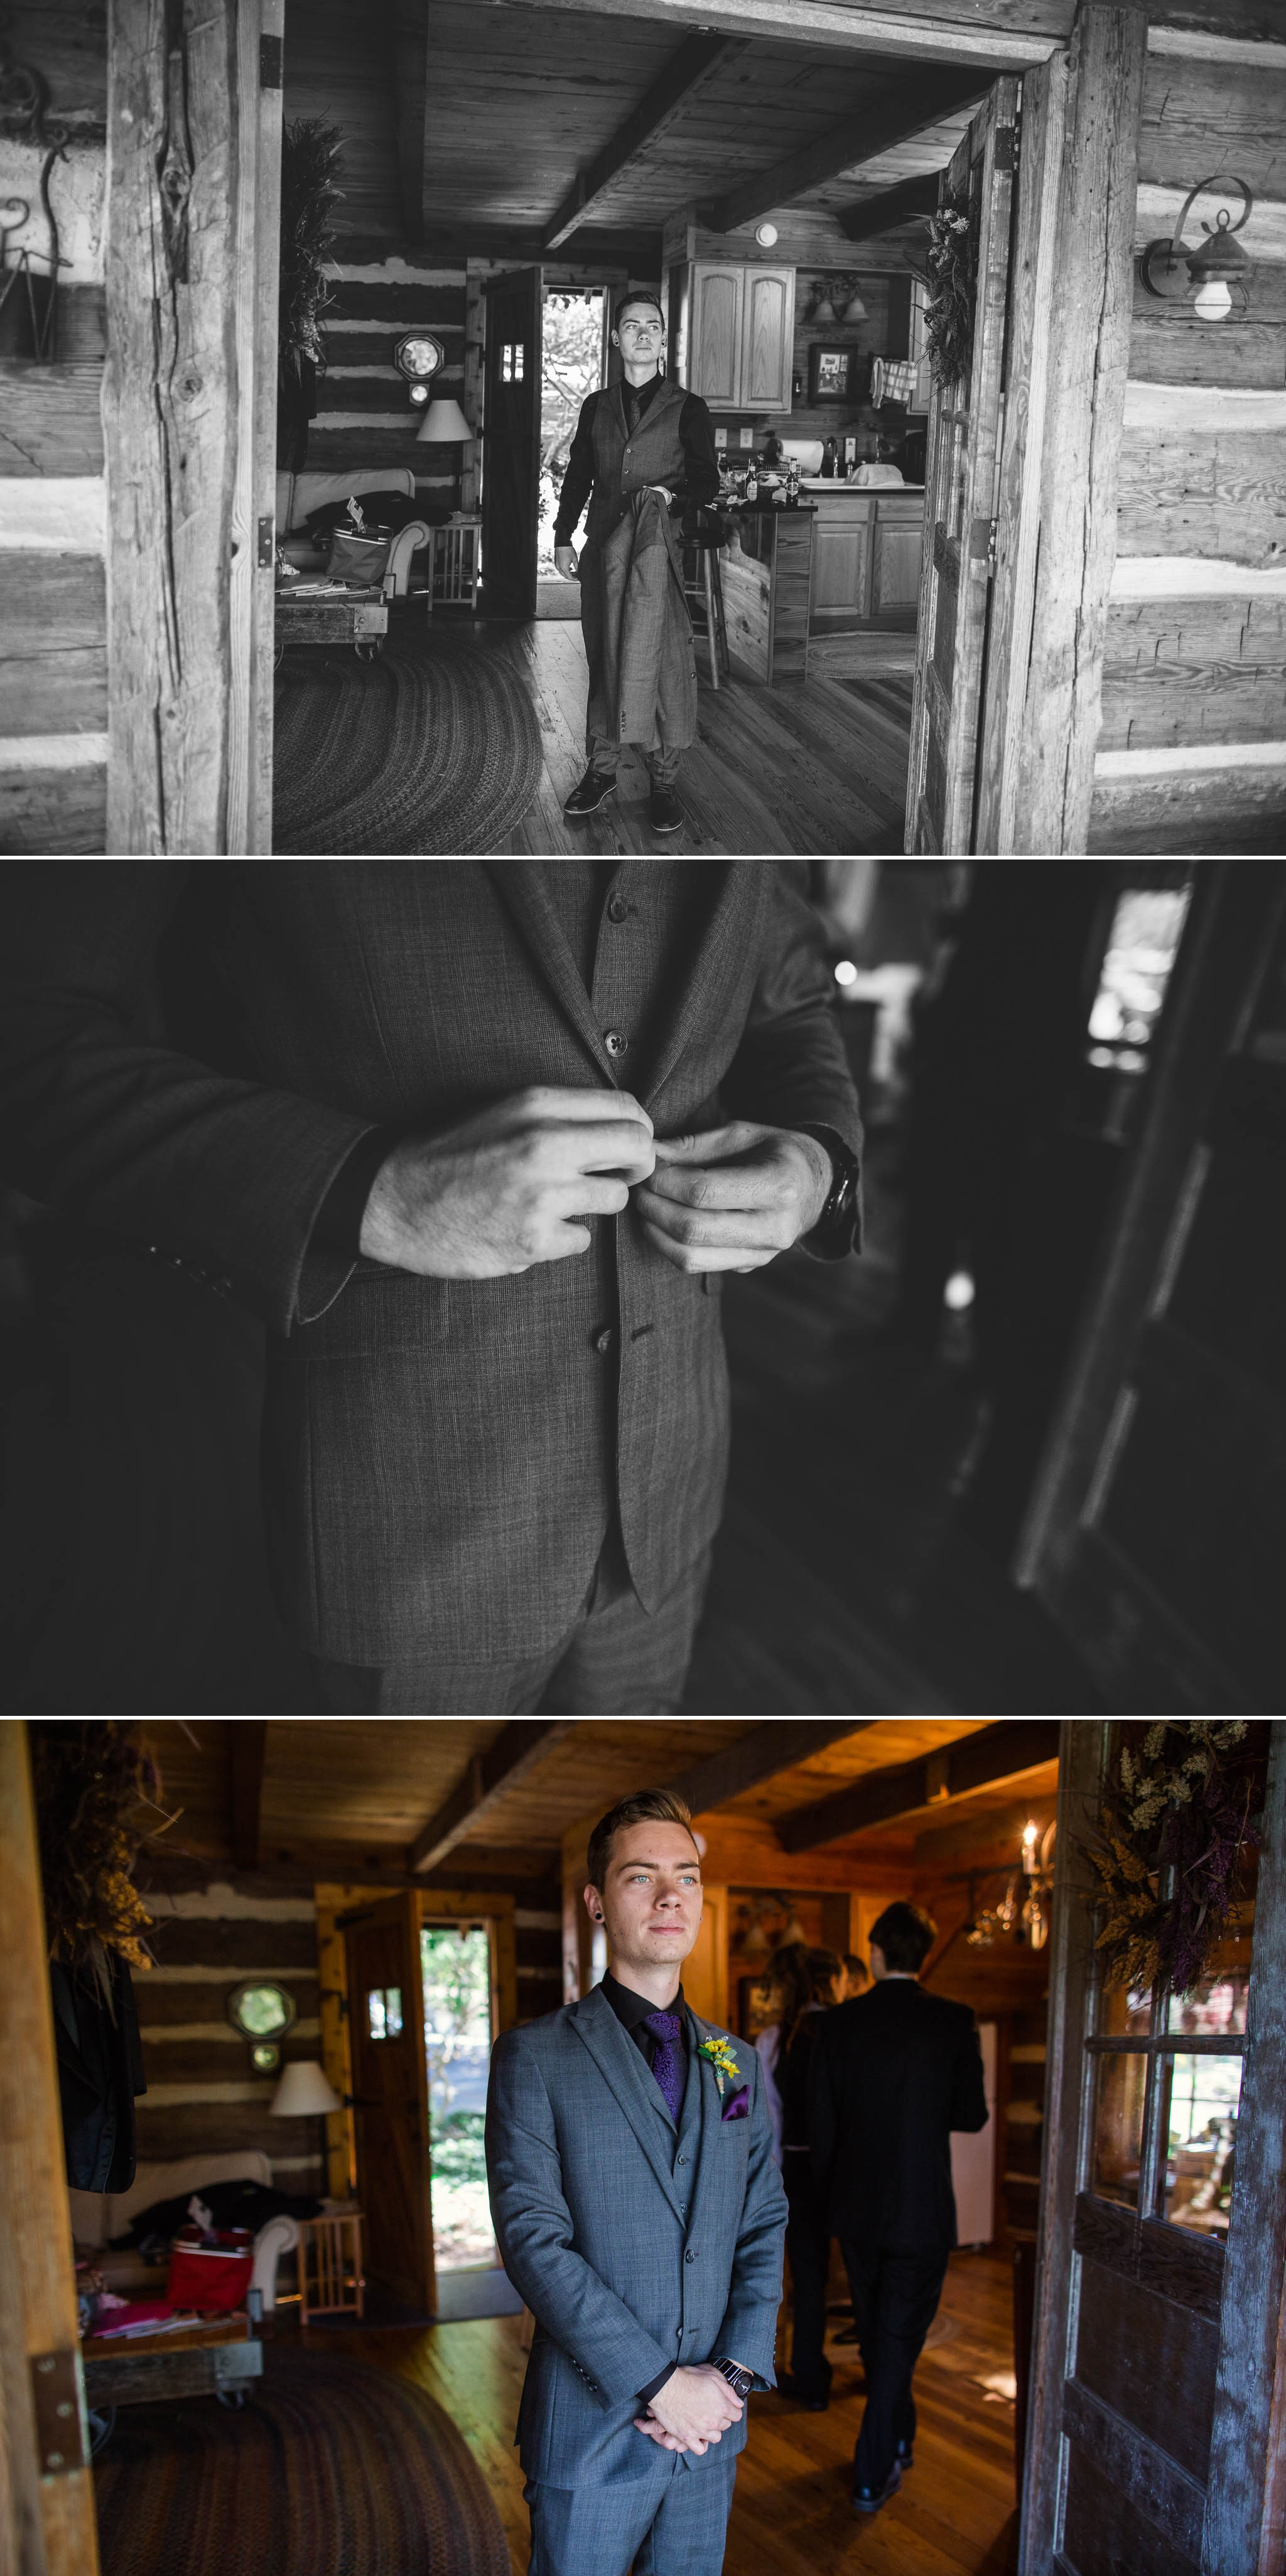 Grooms Details - Brittany + Greg - The Groomes Place - Charlotte, NC Wedding Photographer